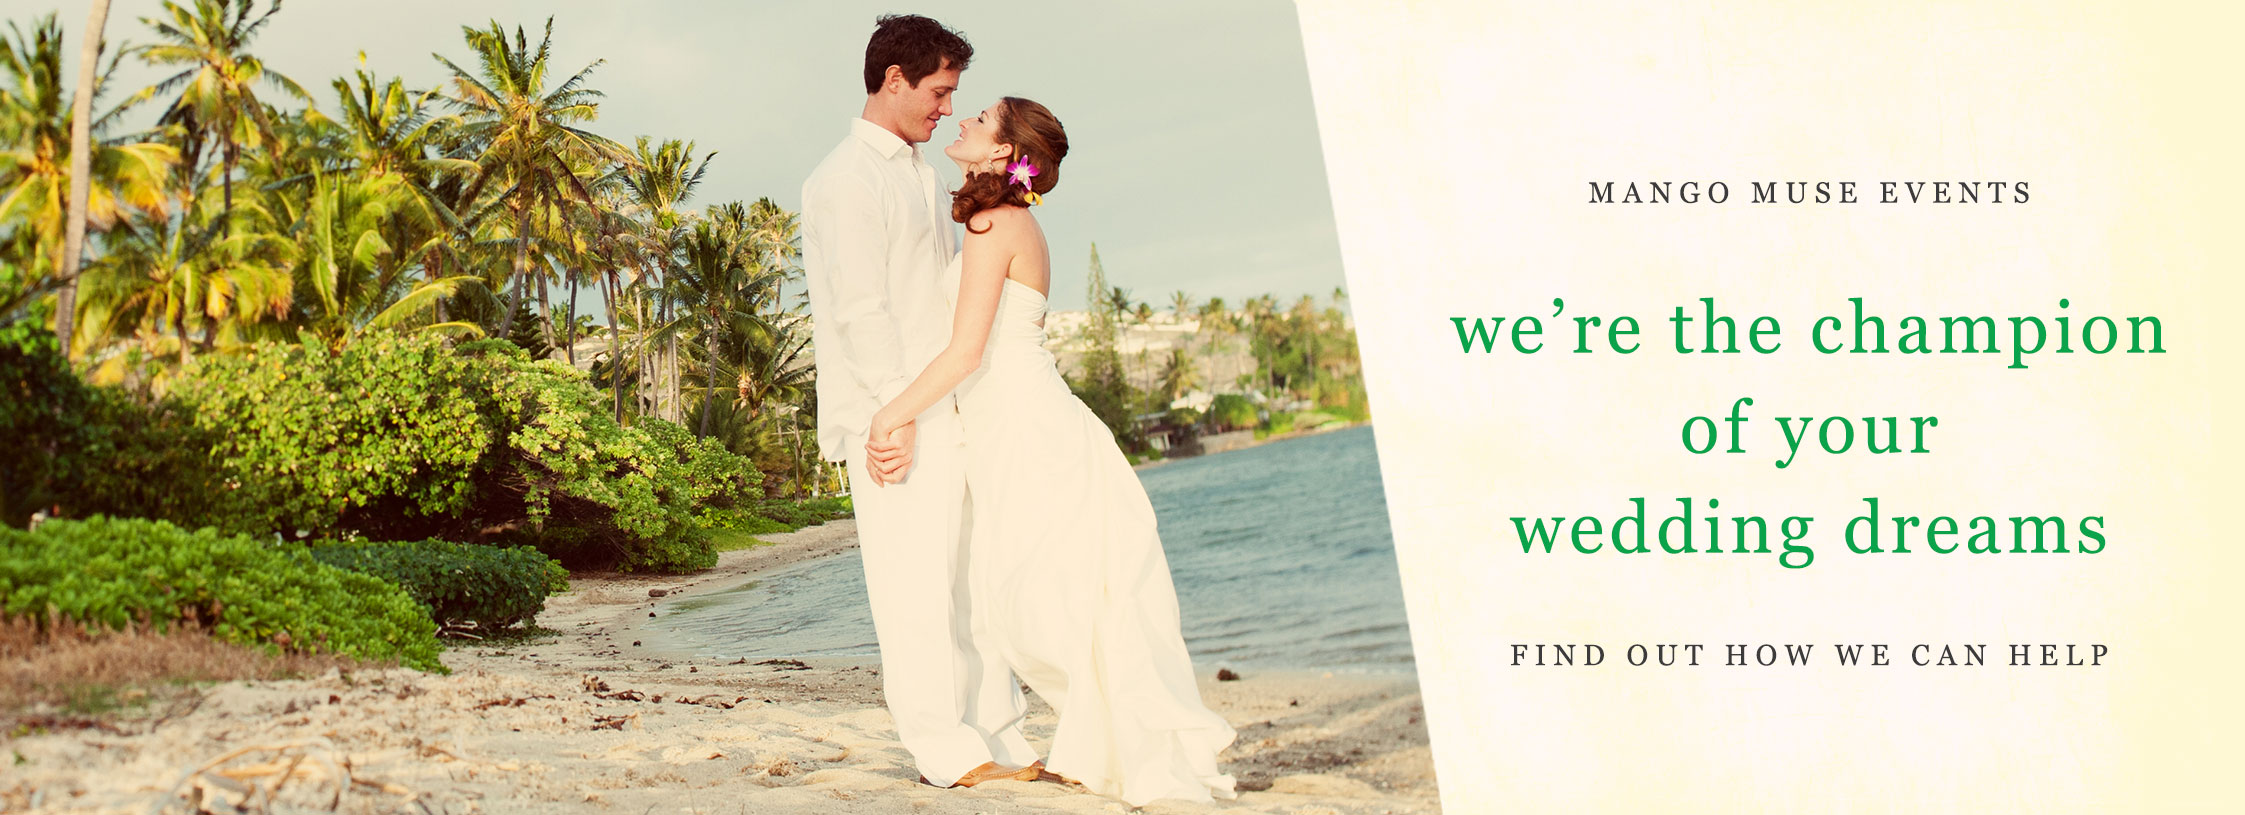 Destination wedding on the beach at a private estate in Hawaii by Destination wedding planner Mango Muse Events